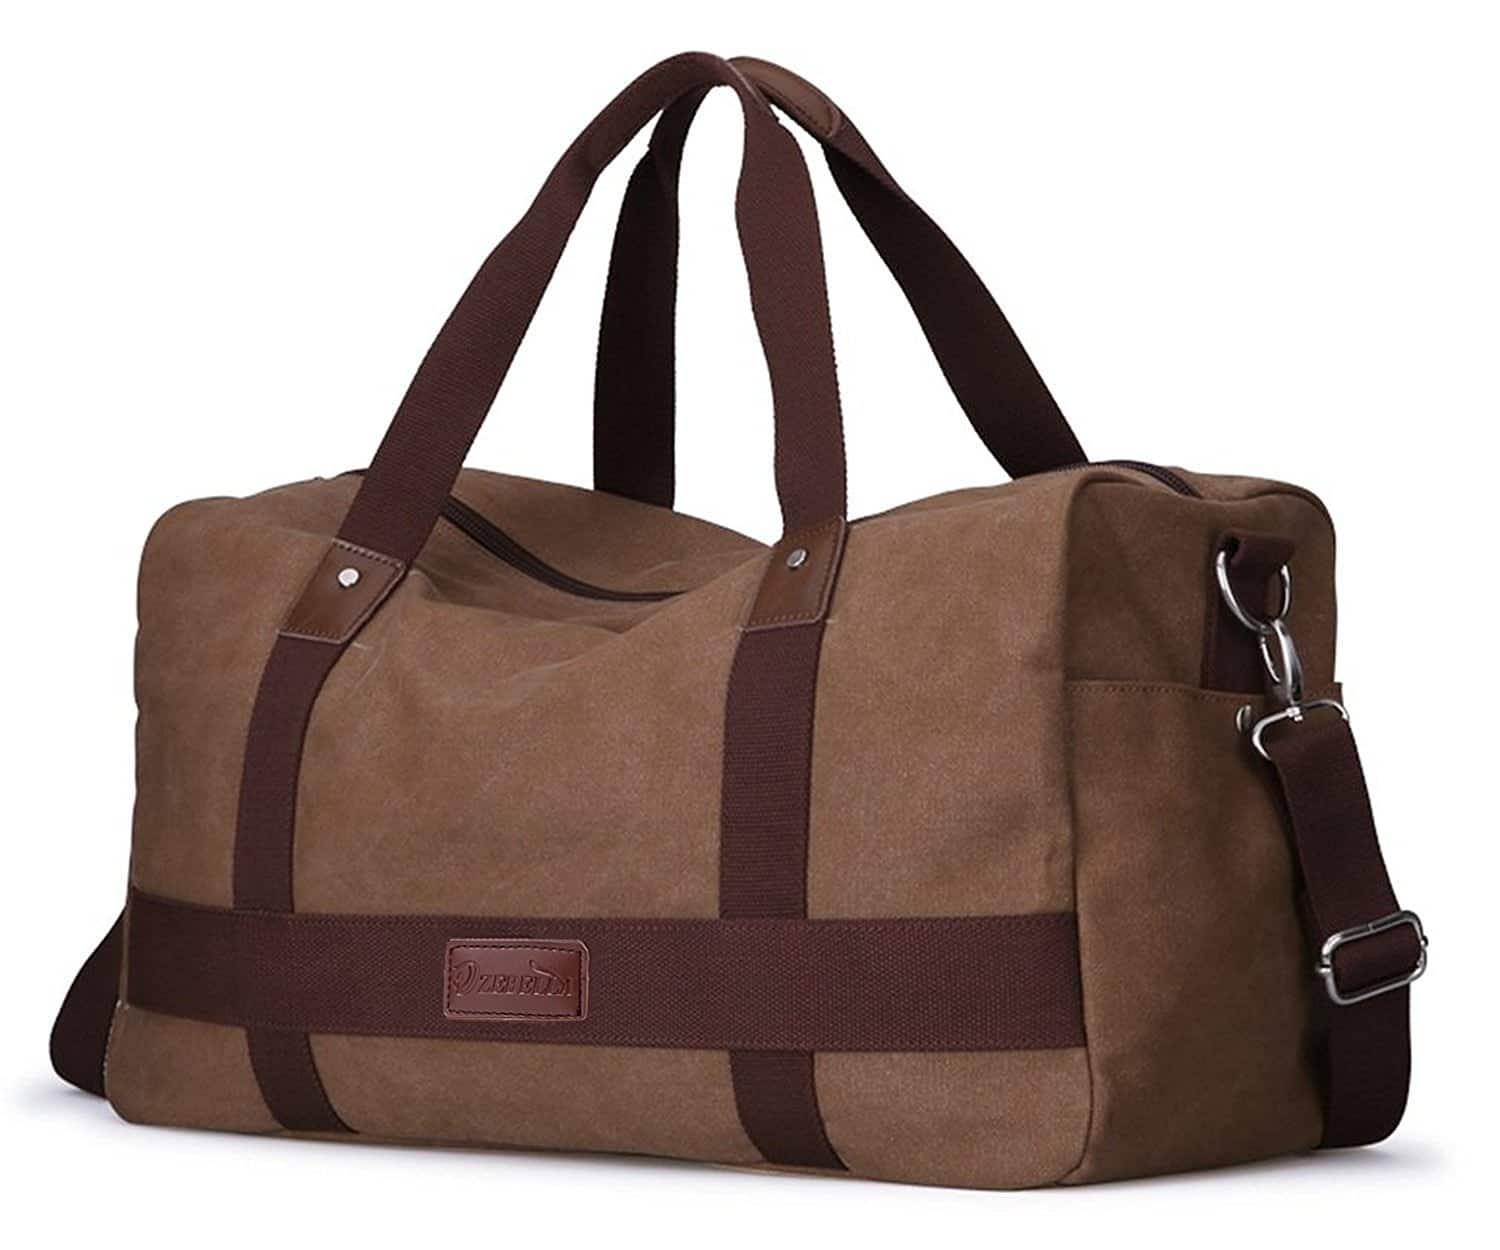 Travel Duffel Tote Sports Gym Bag $19.99 @amazon